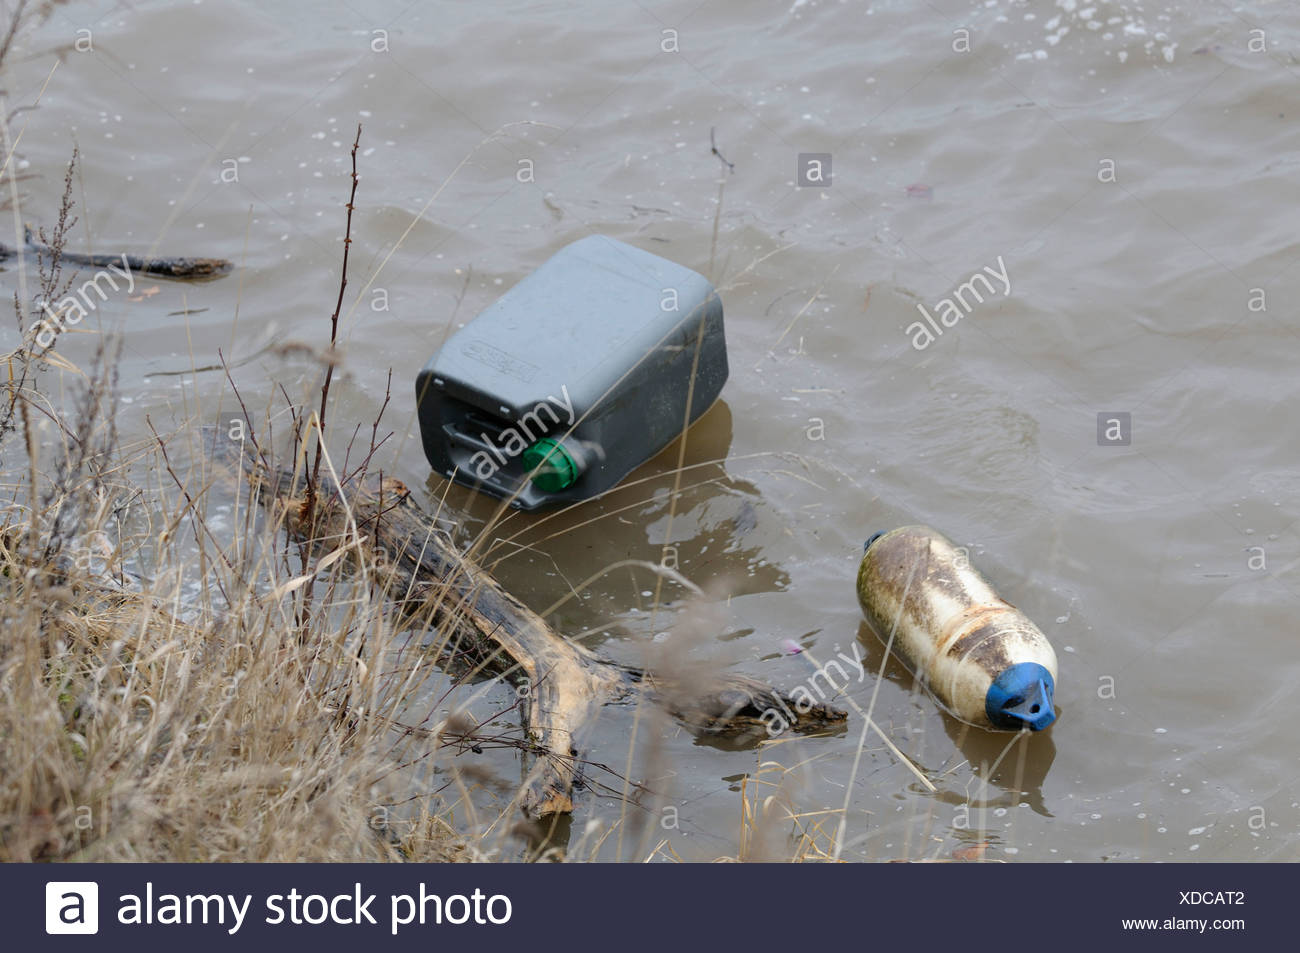 Flooded river with flotsam along the bank, environmental pollution - Stock Image